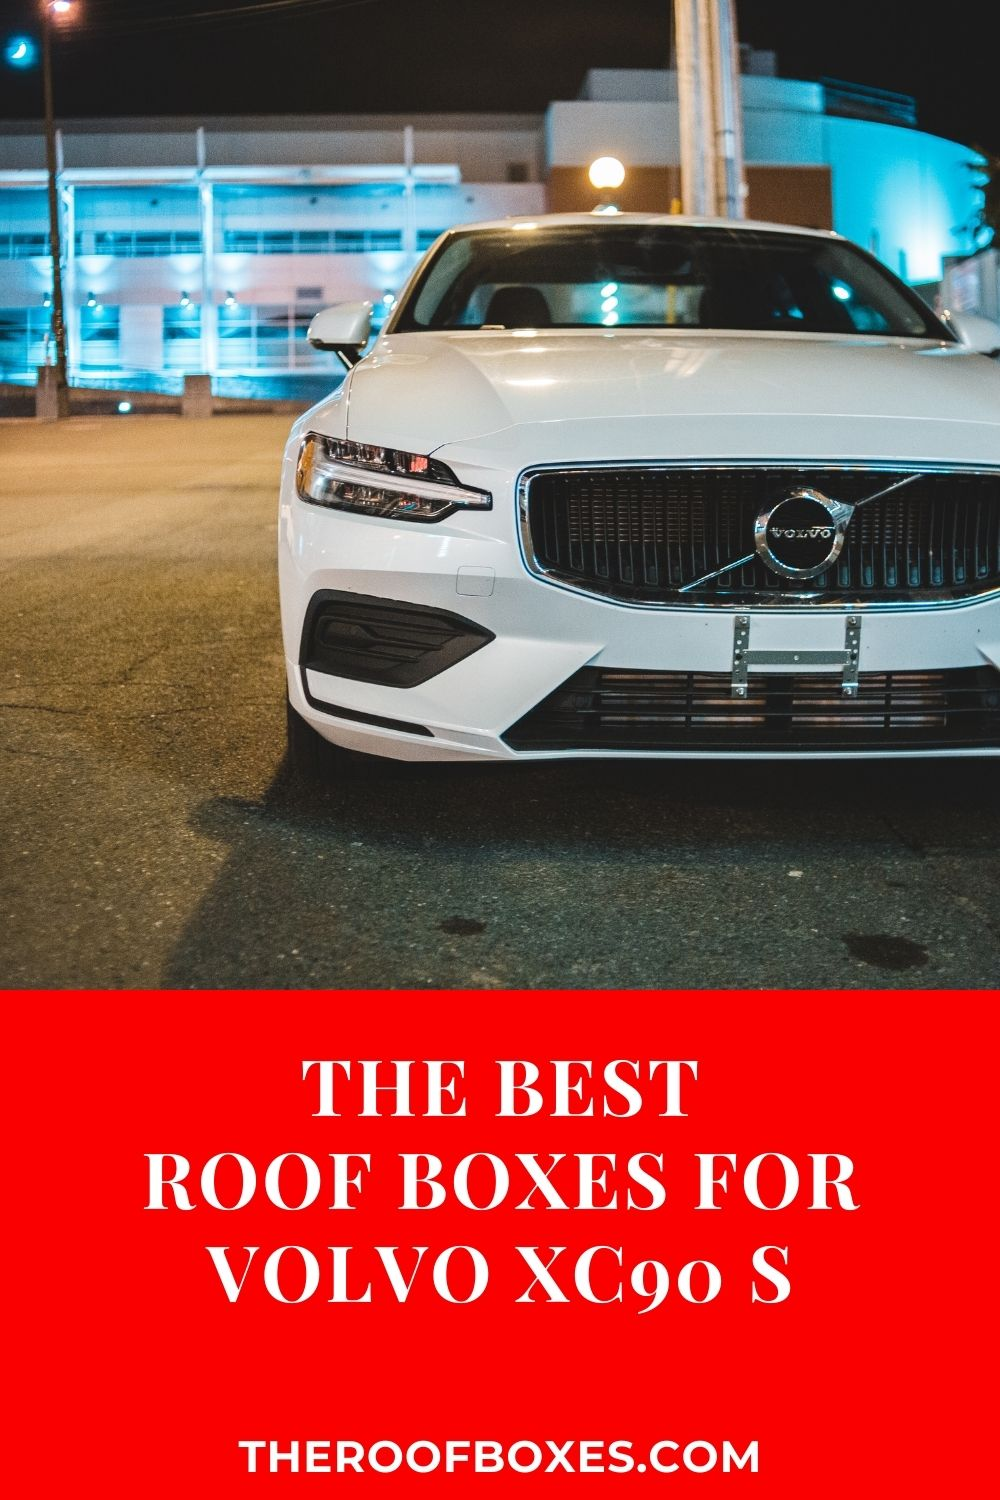 Volvo XC90 Roof Box – Reviews and Comparison